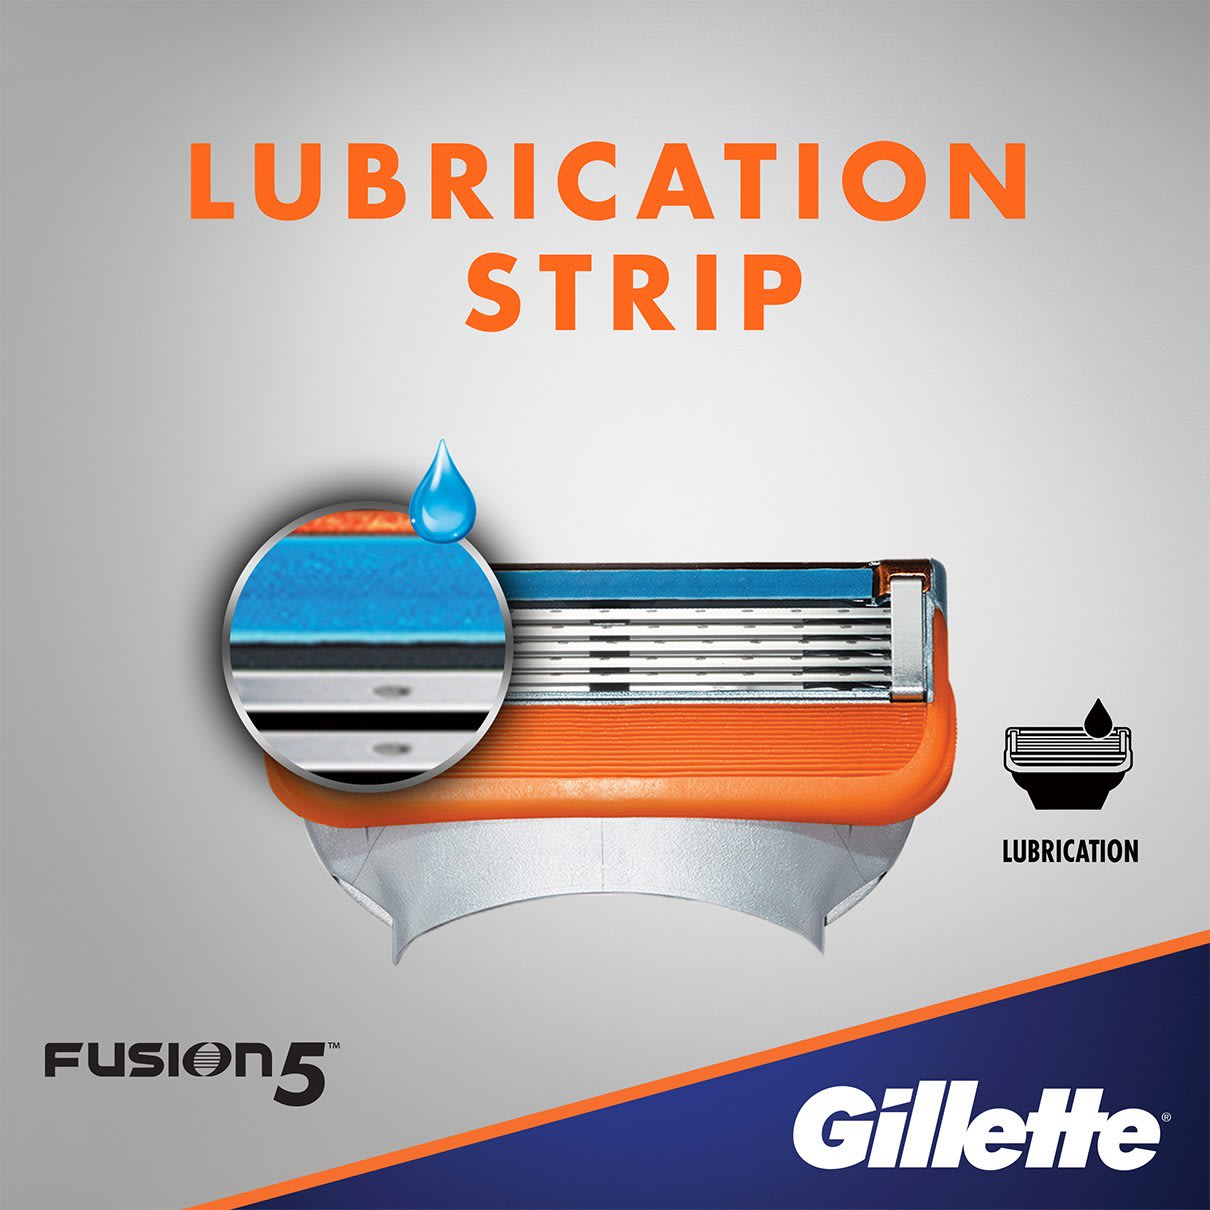 Lubrication strip